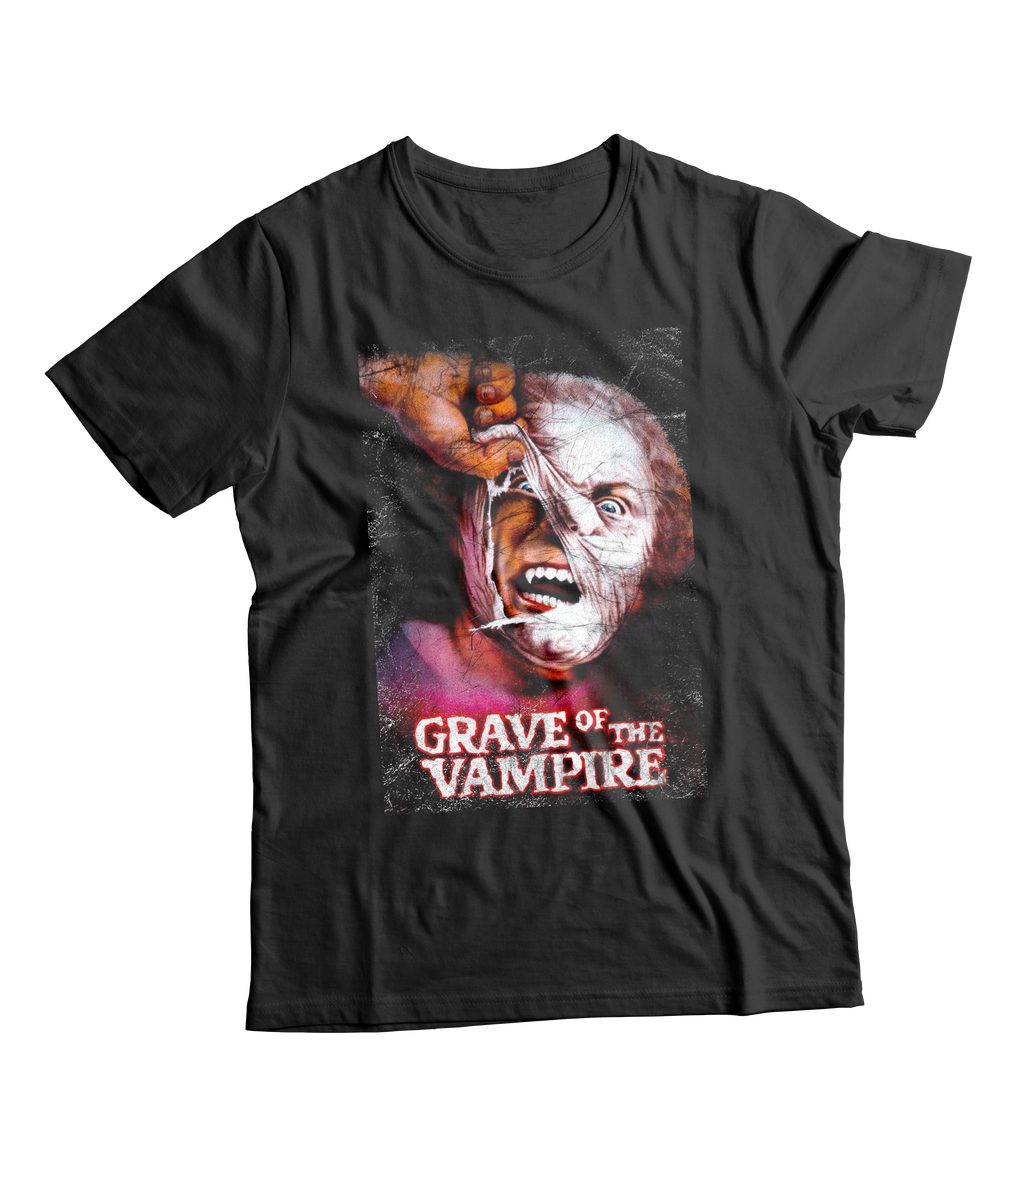 RAYGUN Grave of the Vampire Vintage Heather Blend Charcoal T-Shirt